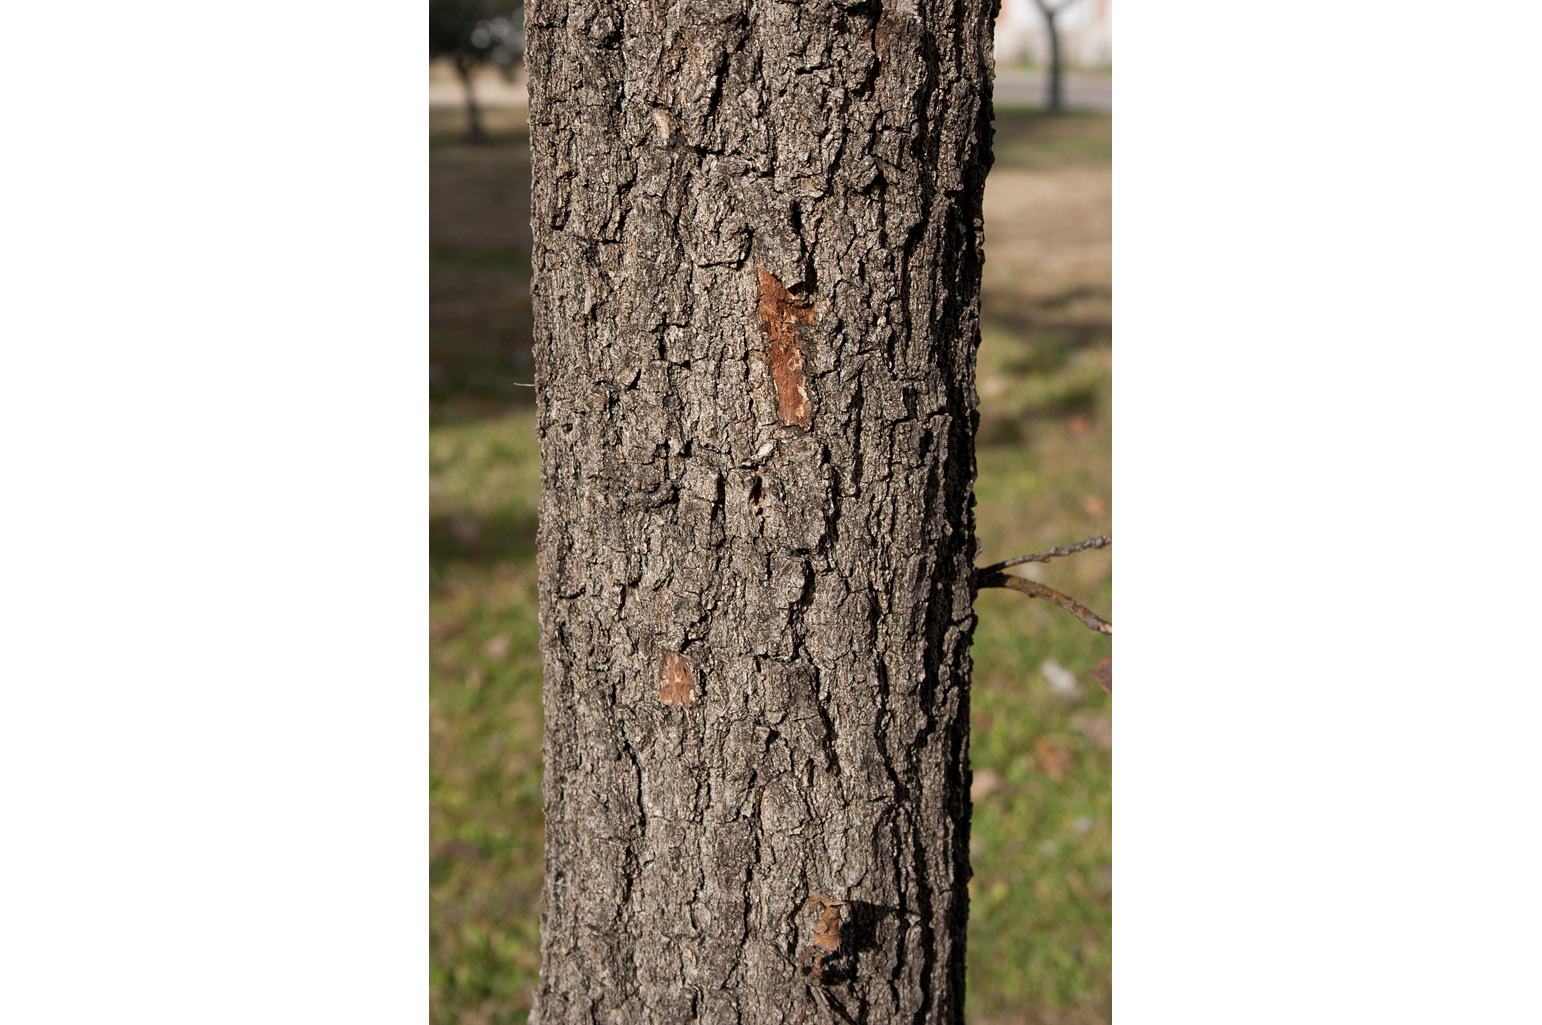 Bark rugous and deeply fissured